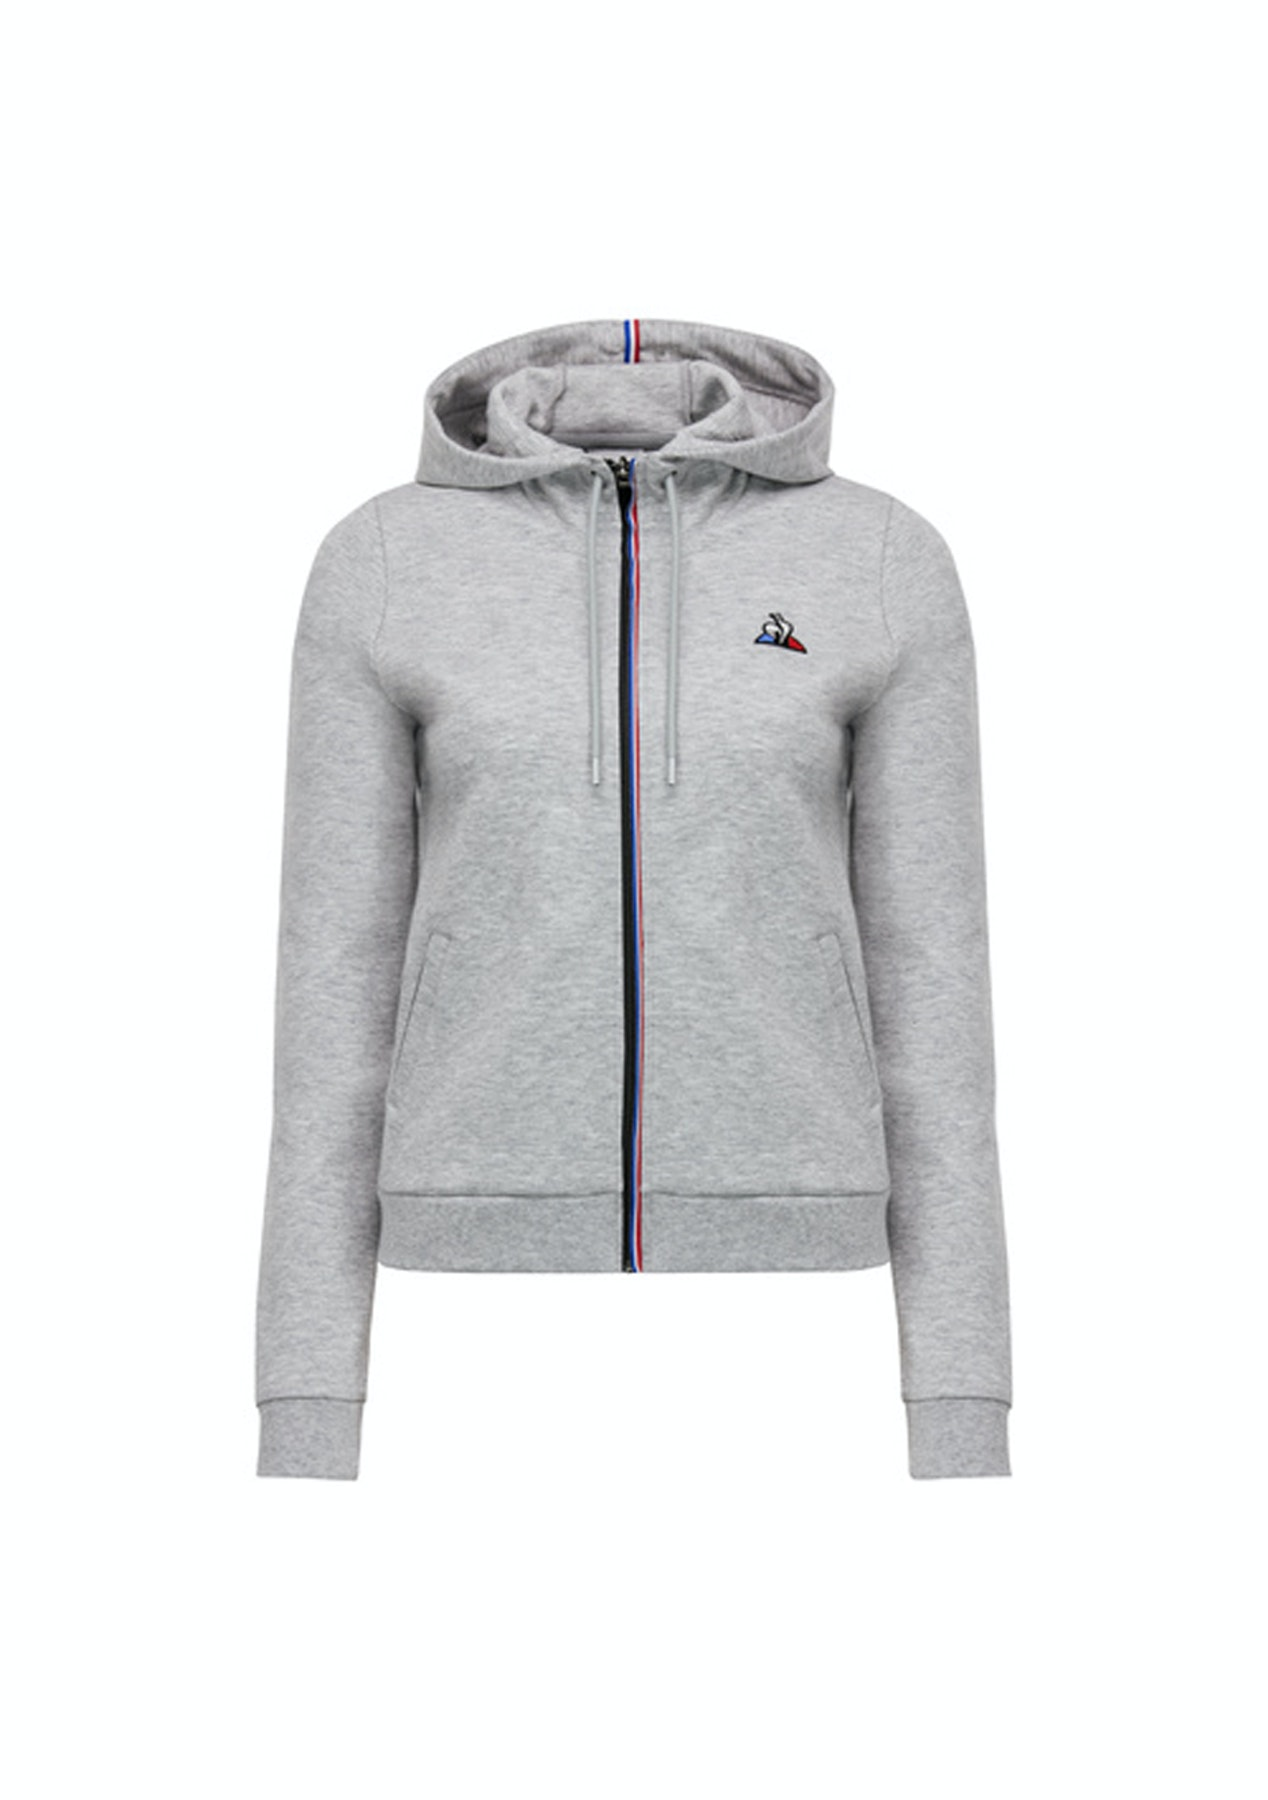 8d521c8b48 Le Coq Sportif - Womens Essentiels Zip Through Sweater - Grey Marle - Le  Coq Sportif - Onceit